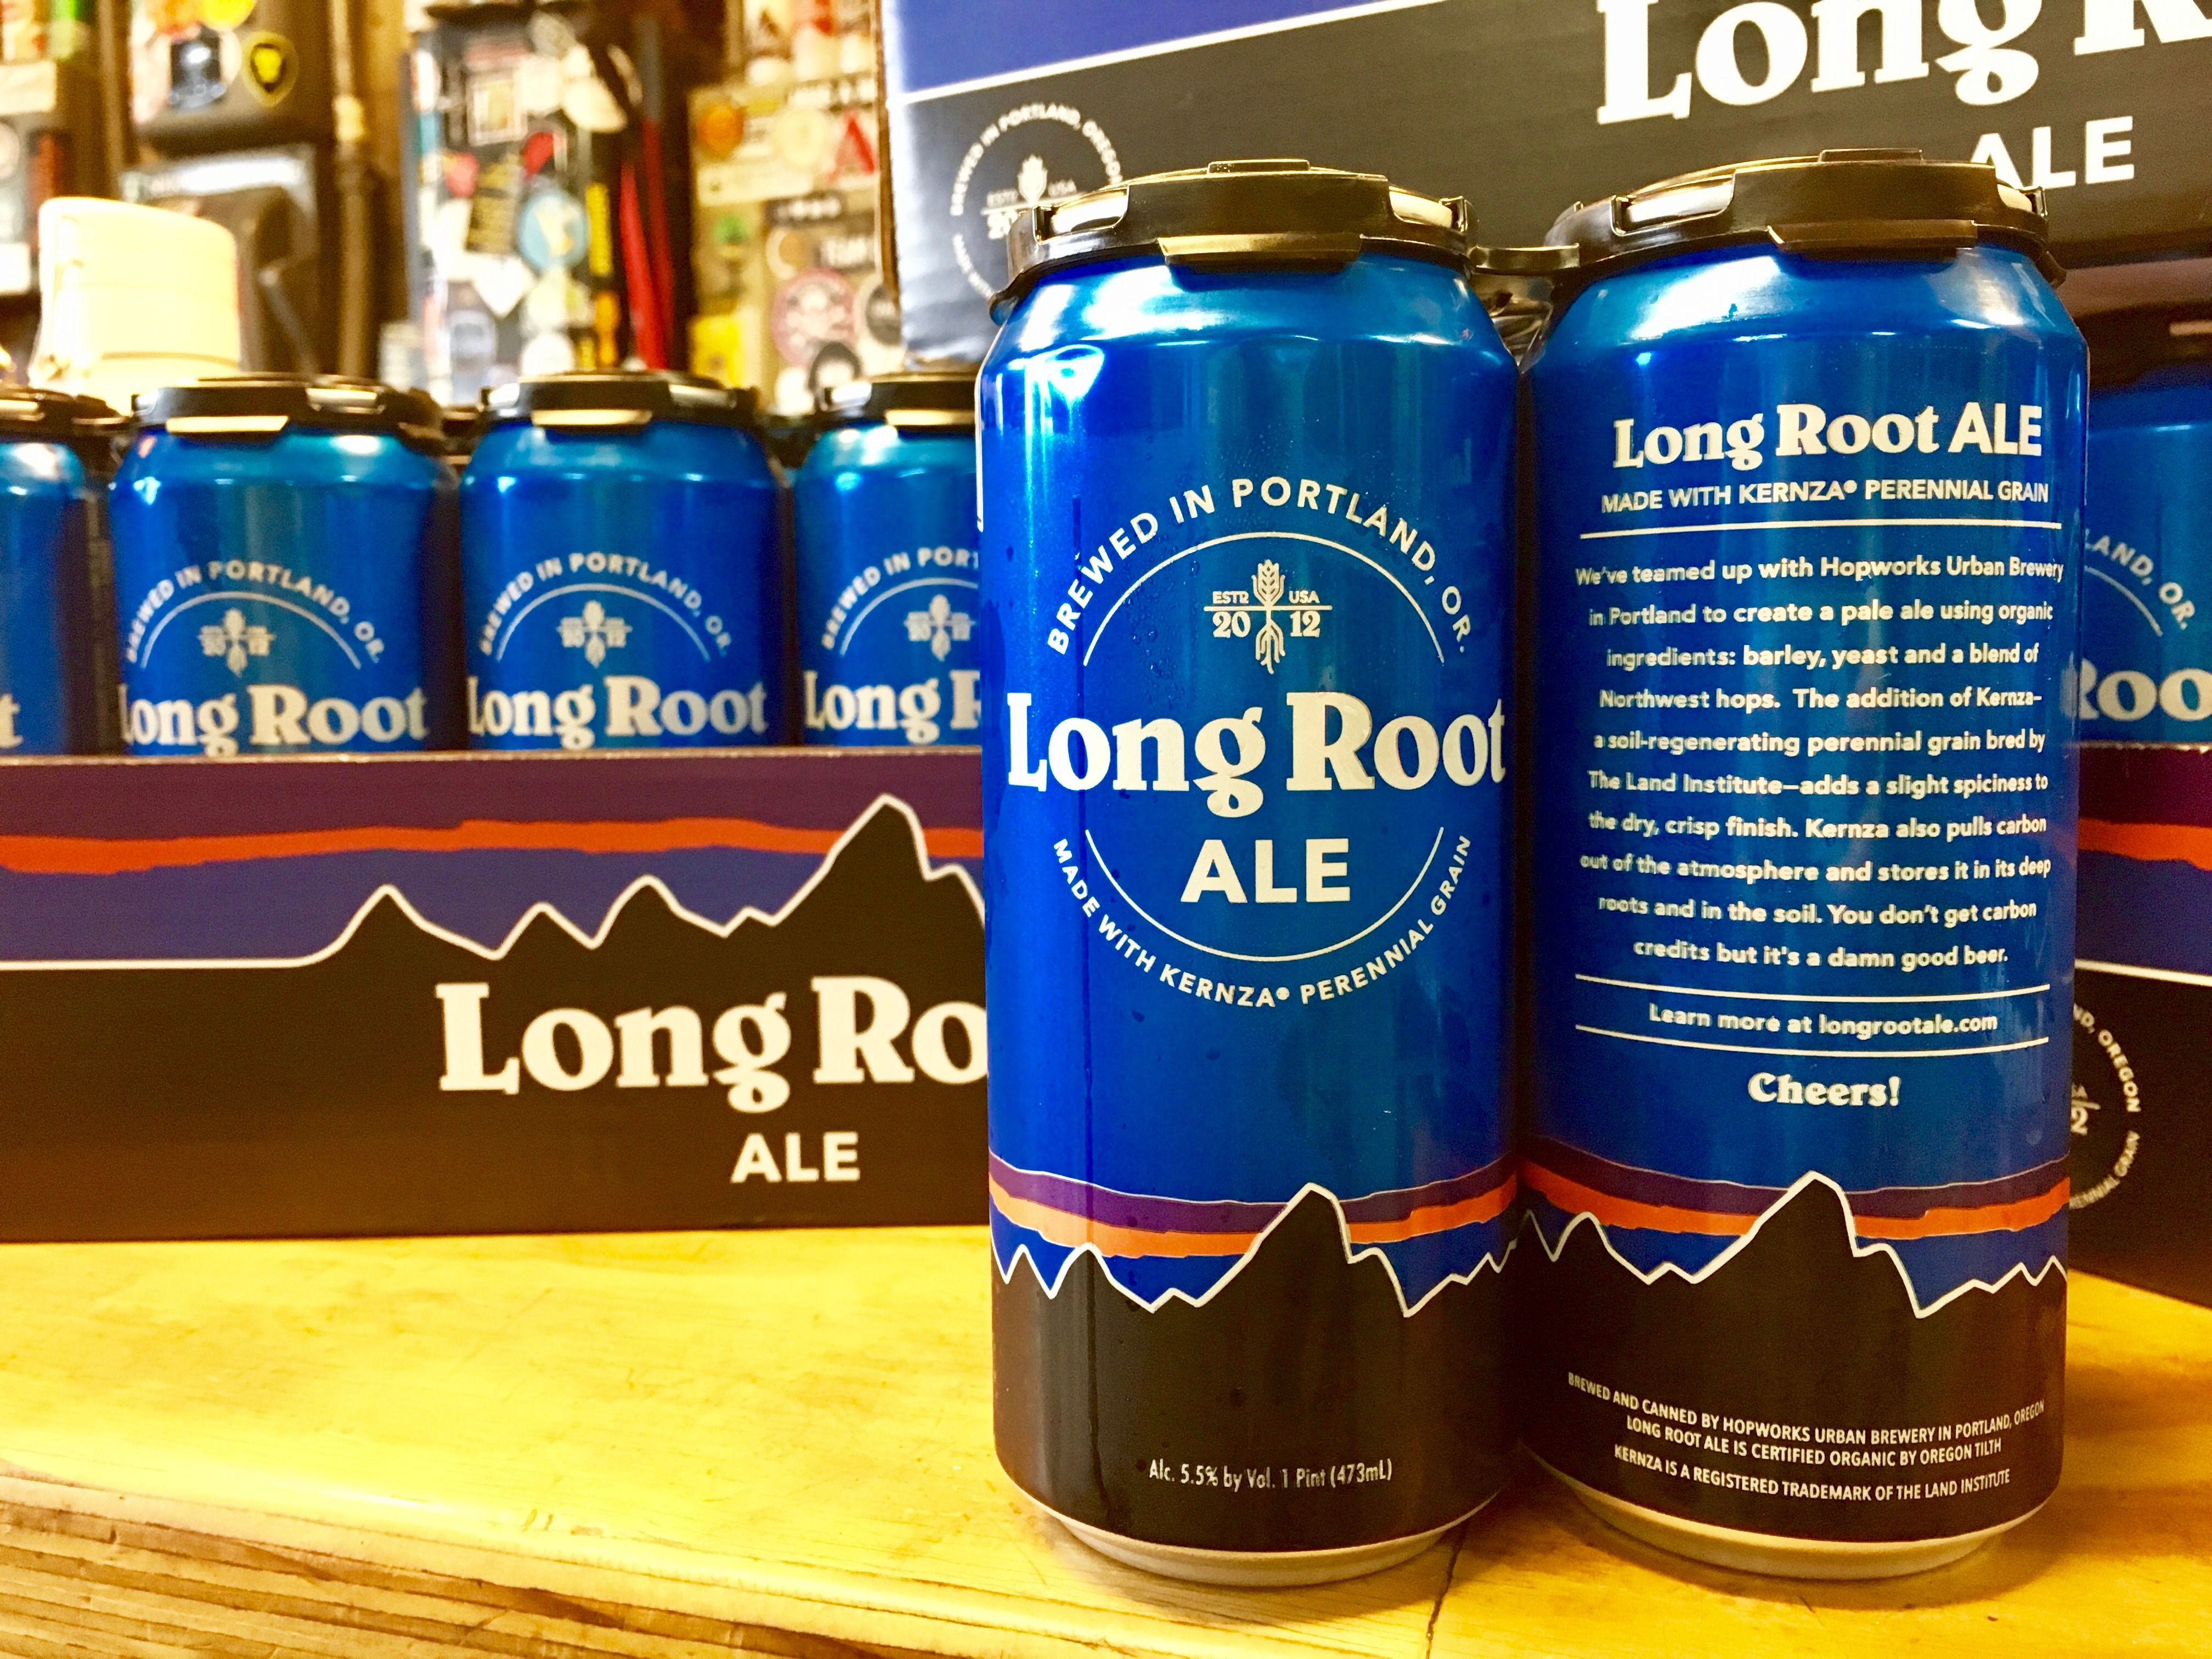 The front and back of a 16 oz. can of Hopworks Urban Brewery and Patagonia Provisions Long Root Ale, brewed with Kernza perennial grain.